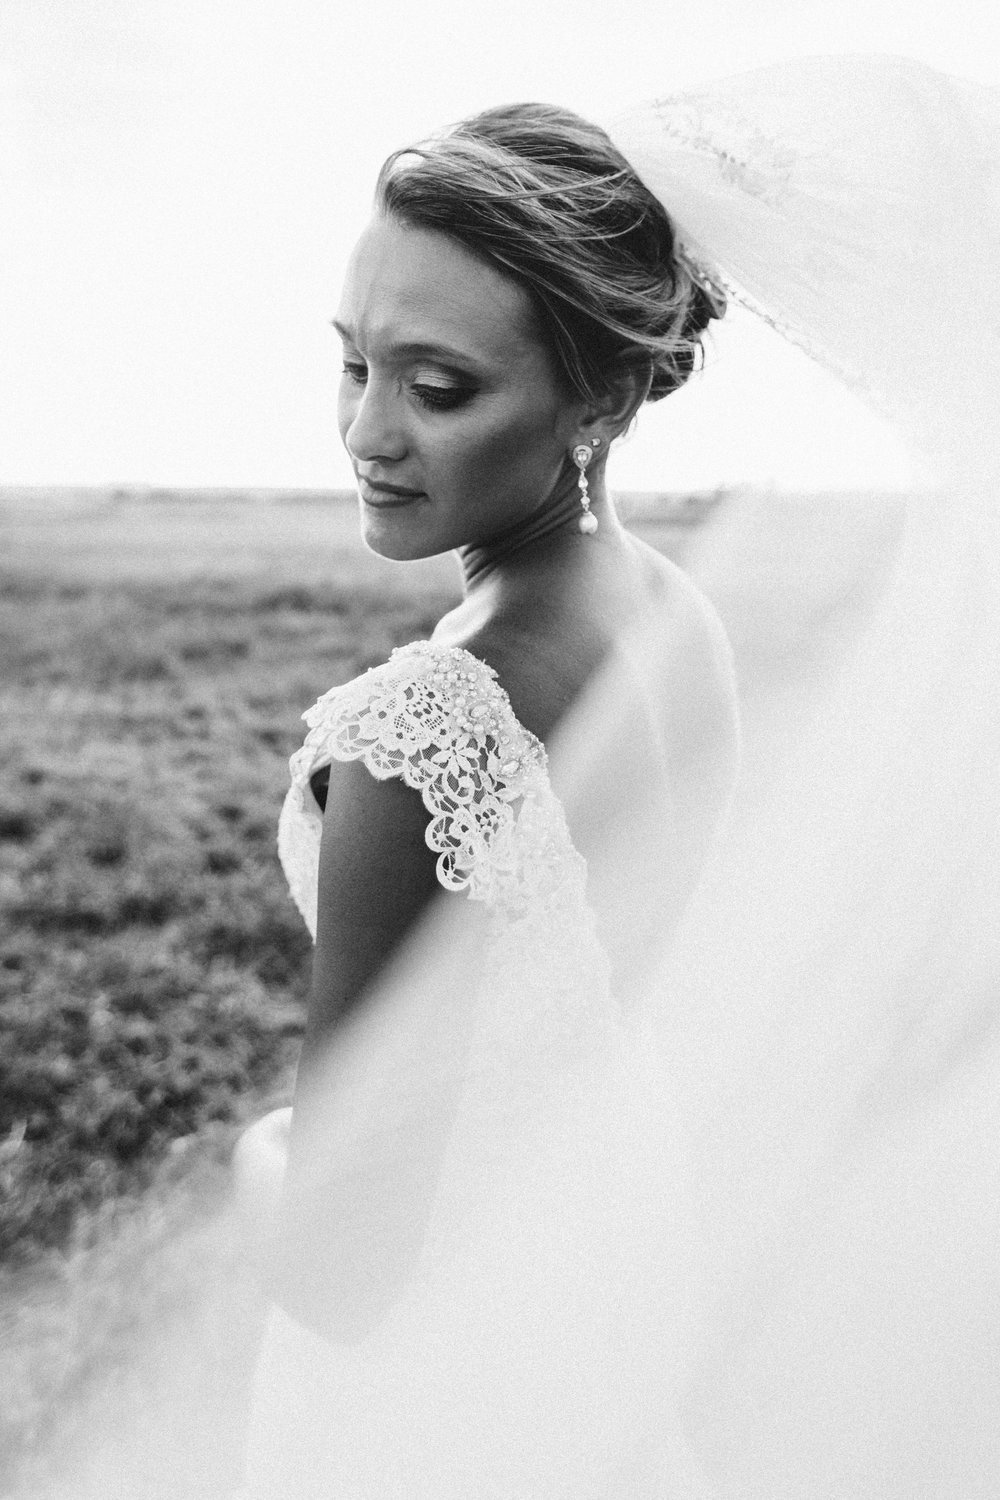 jonathanburkhart,photography,oklahoma,wedding4.jpg